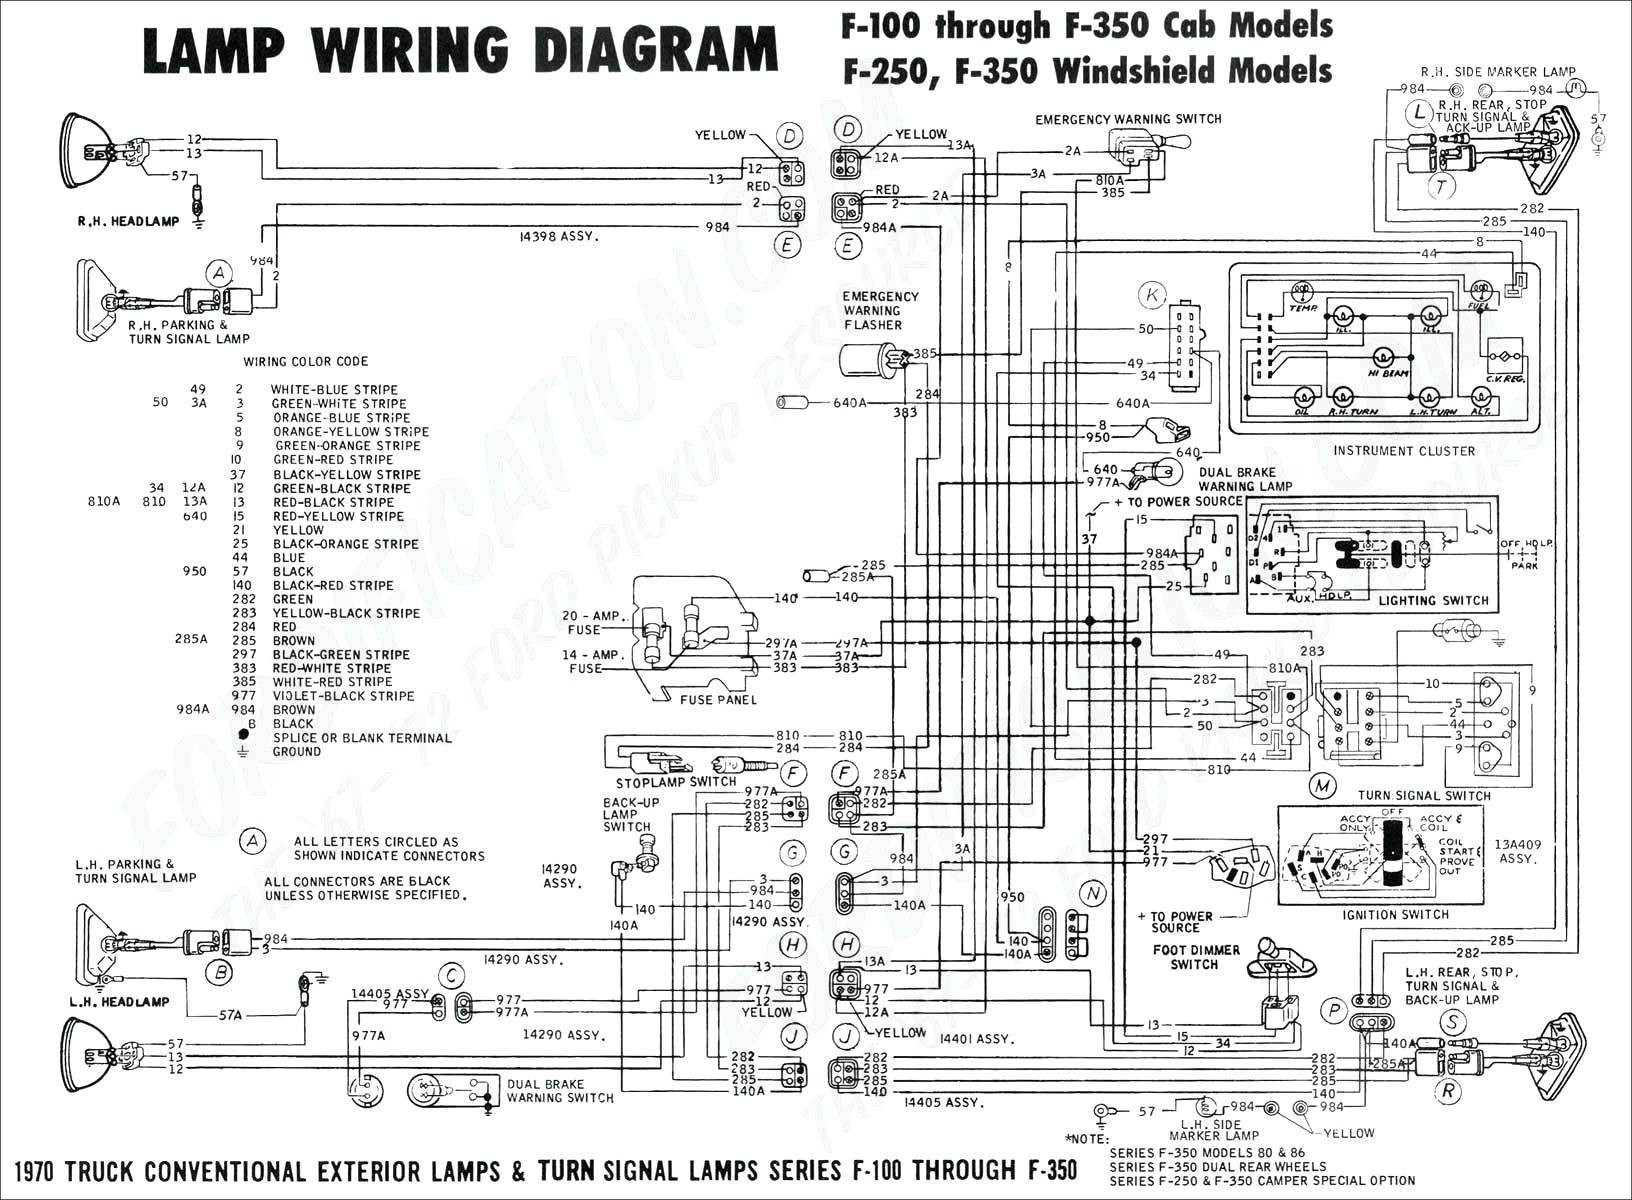 2002 Ford Focus Se Engine Diagram How To Replace The Starter A 2001 F 350 Wiring Data Diagrams